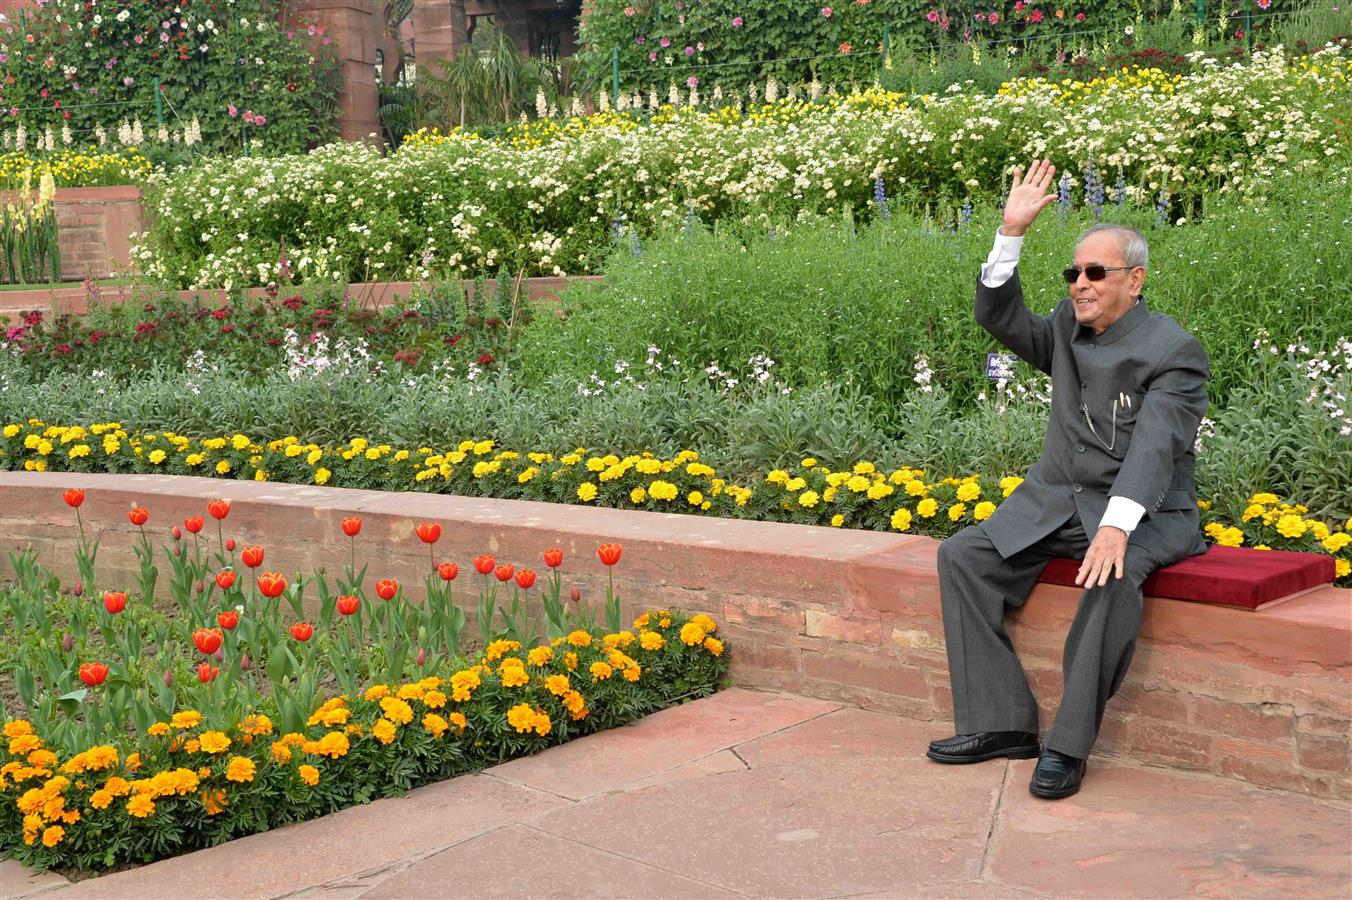 PRANAB DA: MAN OF ALL SEASONS